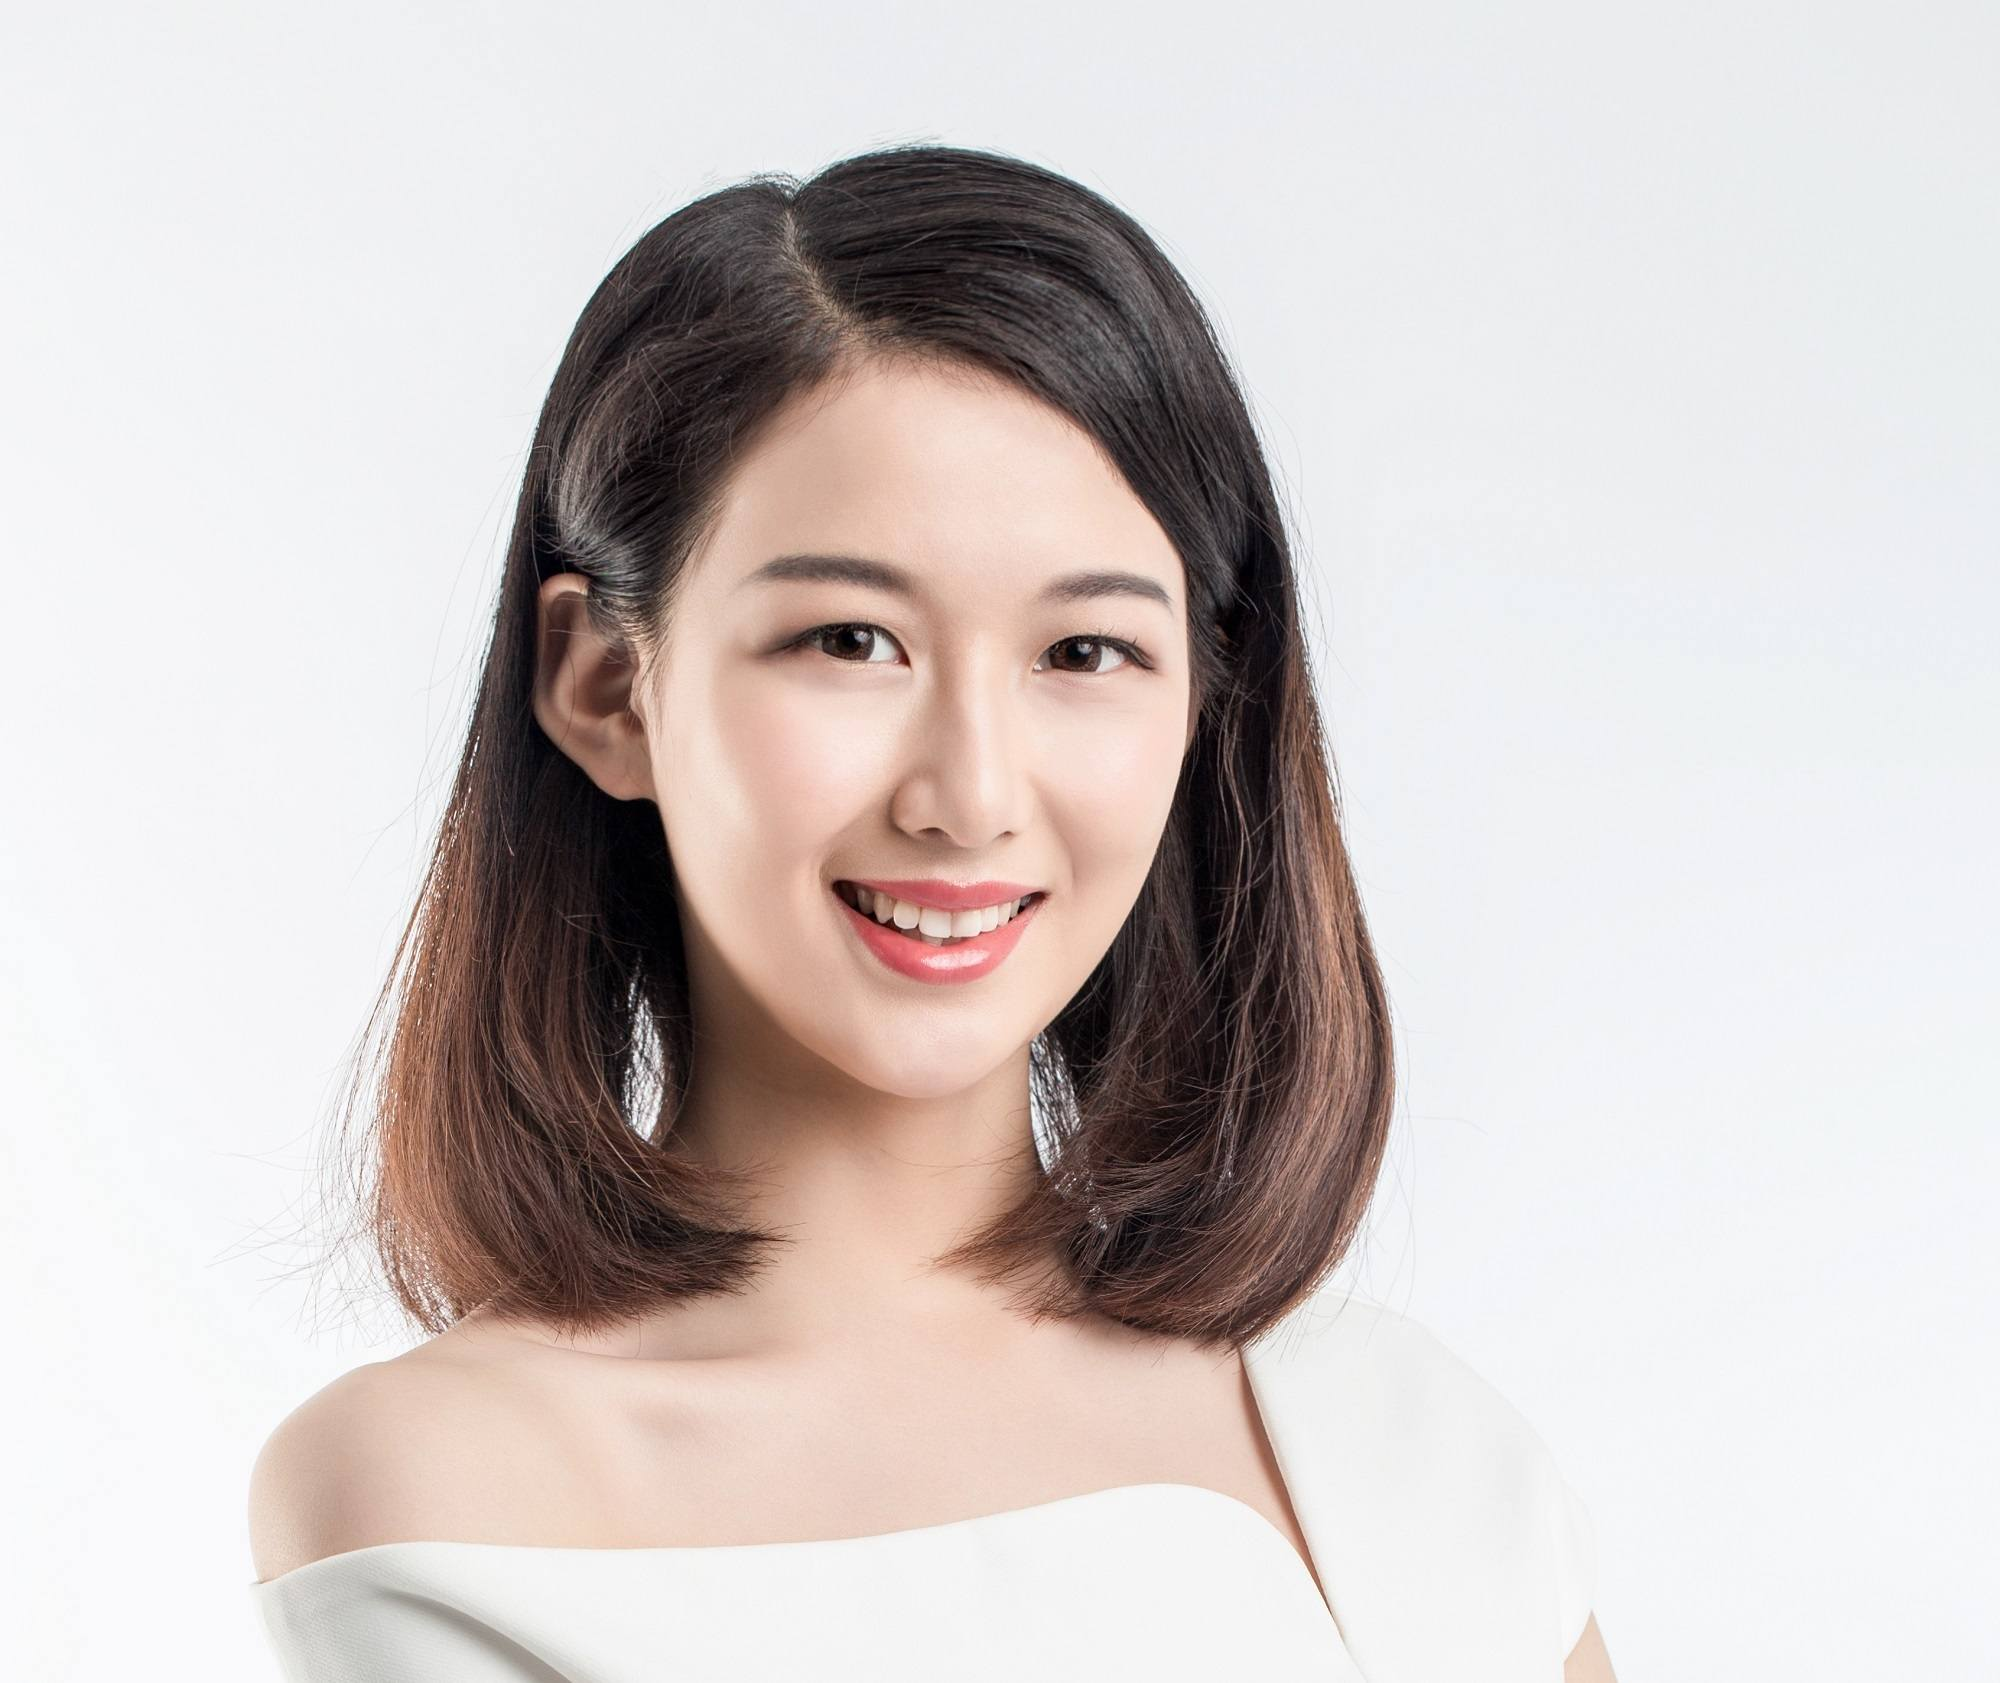 Chocolate brown hair: Closeup shot of an Asian woman with long dark bob wearing a white dress against a white background